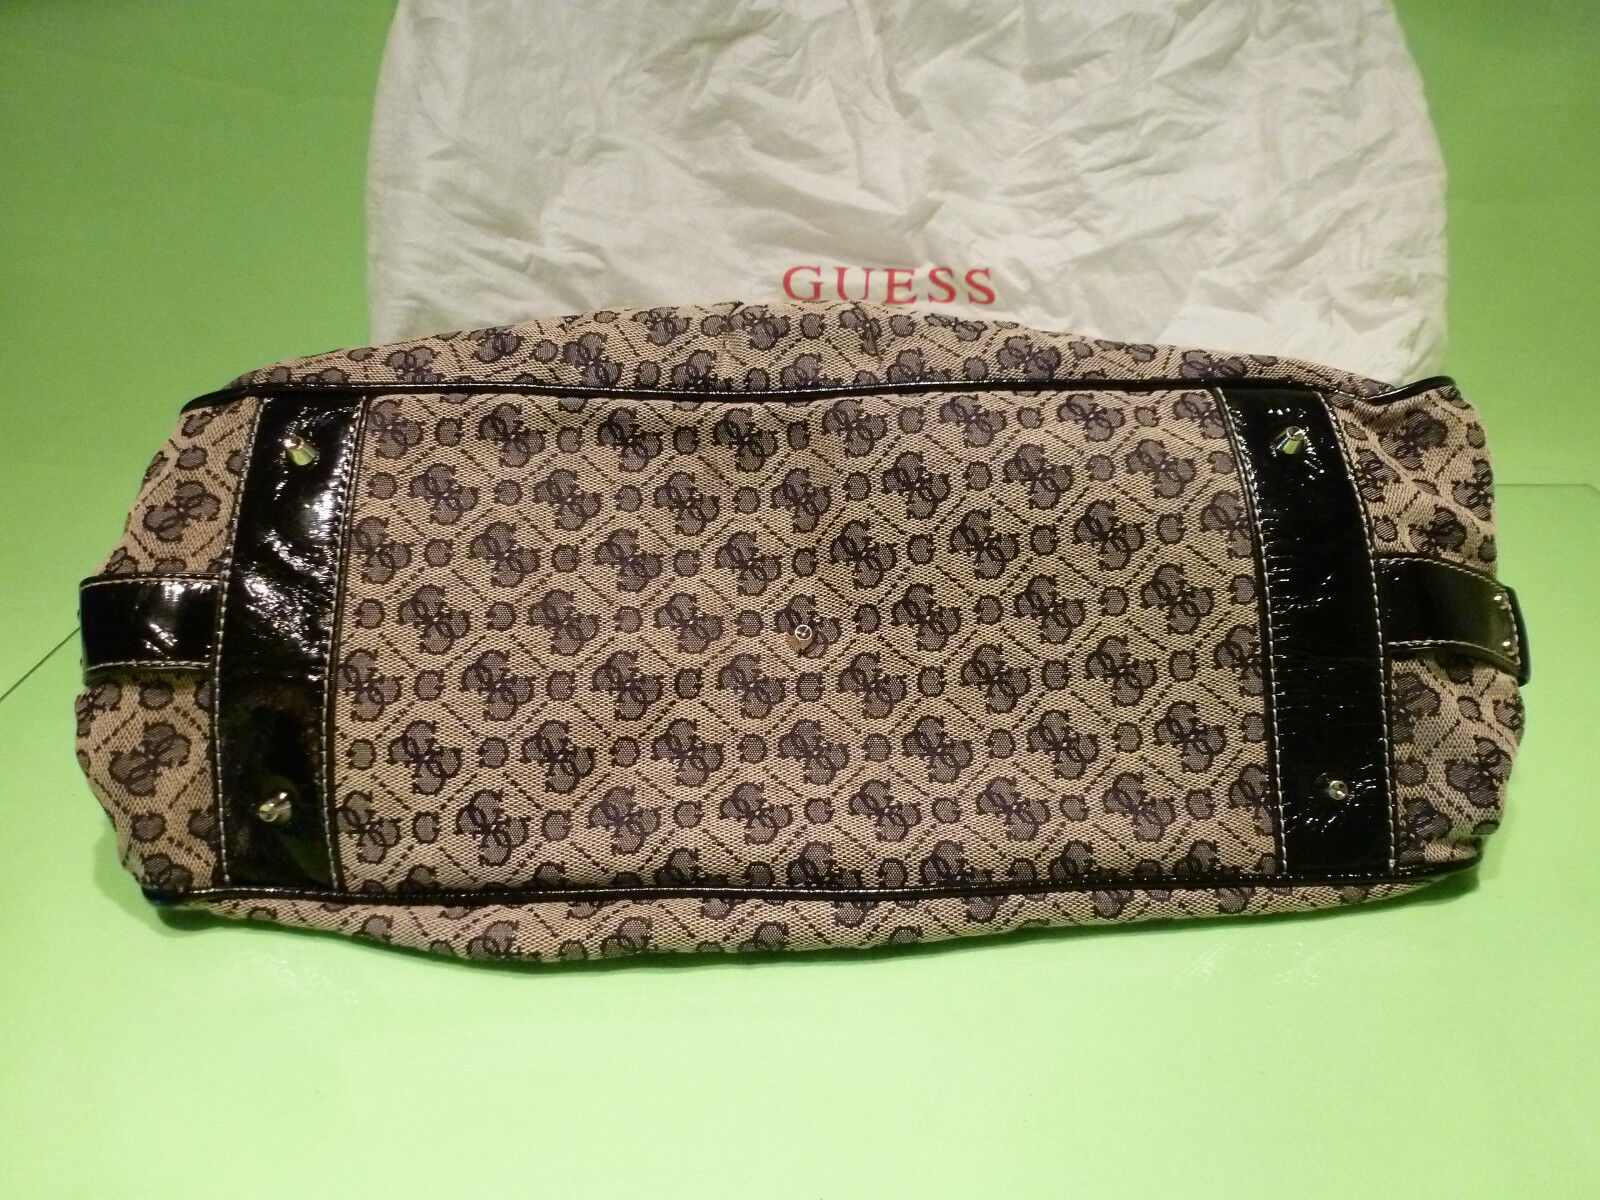 GUESS  BAG - USED VINTAGE BAG - IN IN IN VERY GOOD CONDITION -  EXTREMELY  RARE . 520eed